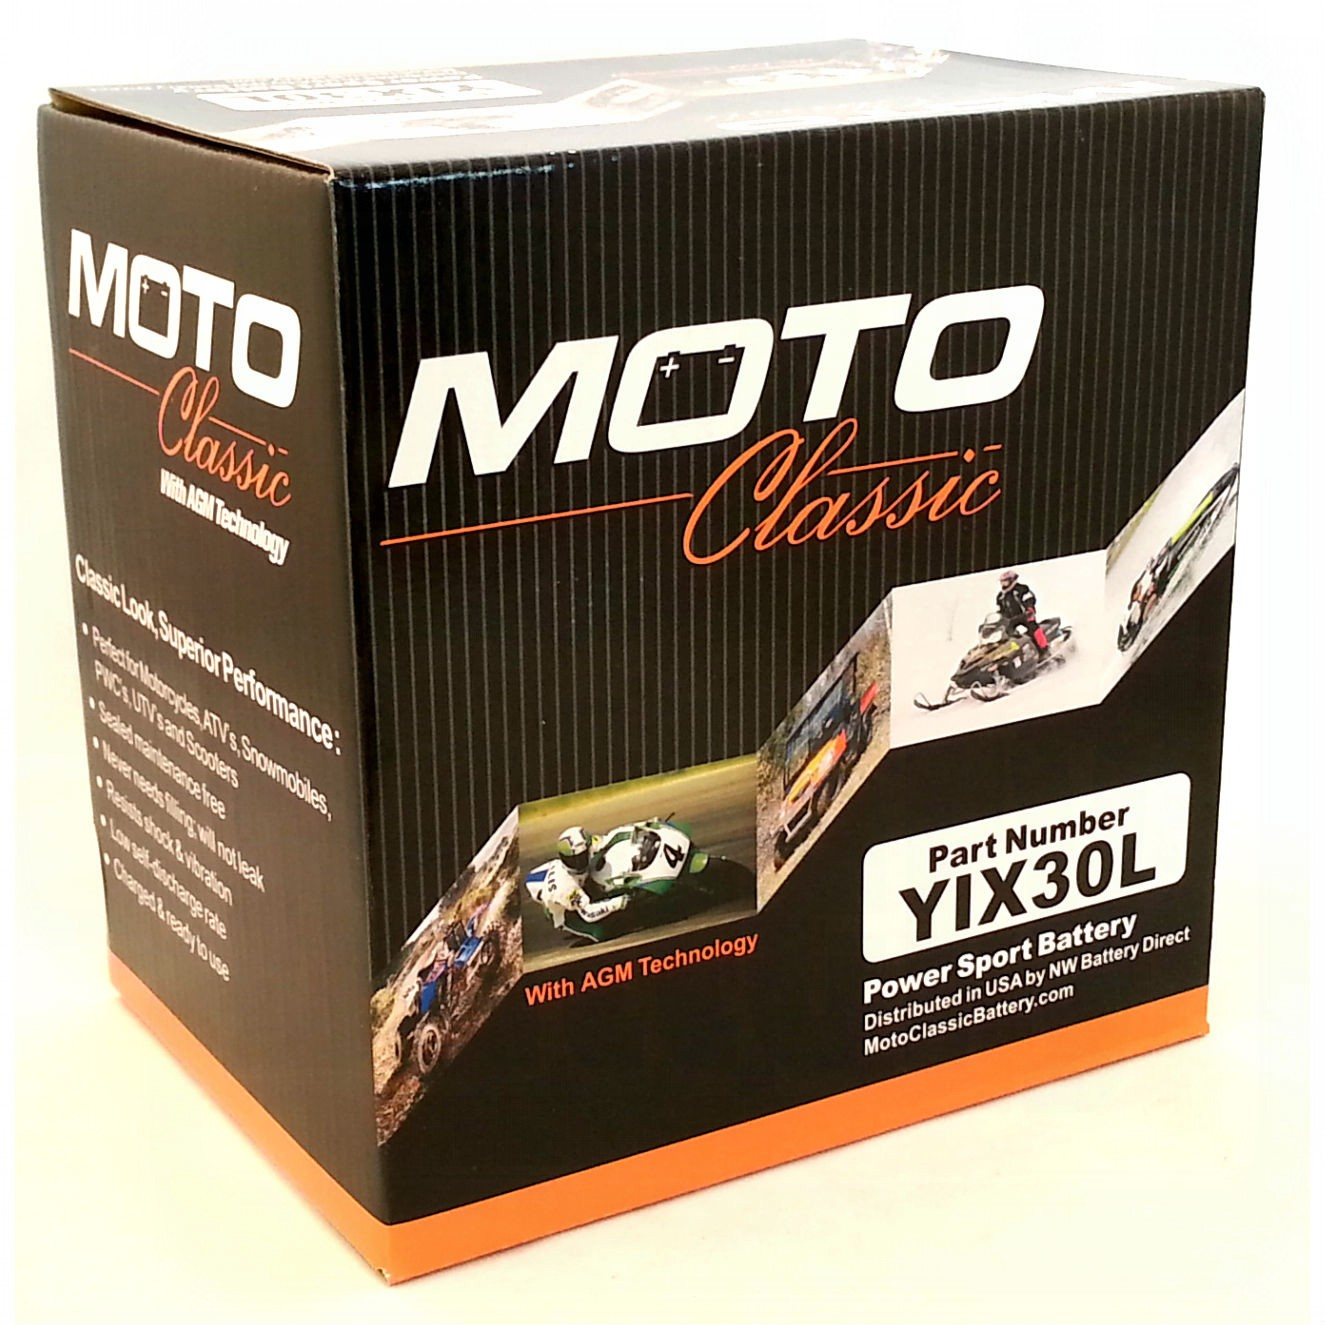 yix30l battery moto classic 12 volt motorcycle batteries. Black Bedroom Furniture Sets. Home Design Ideas